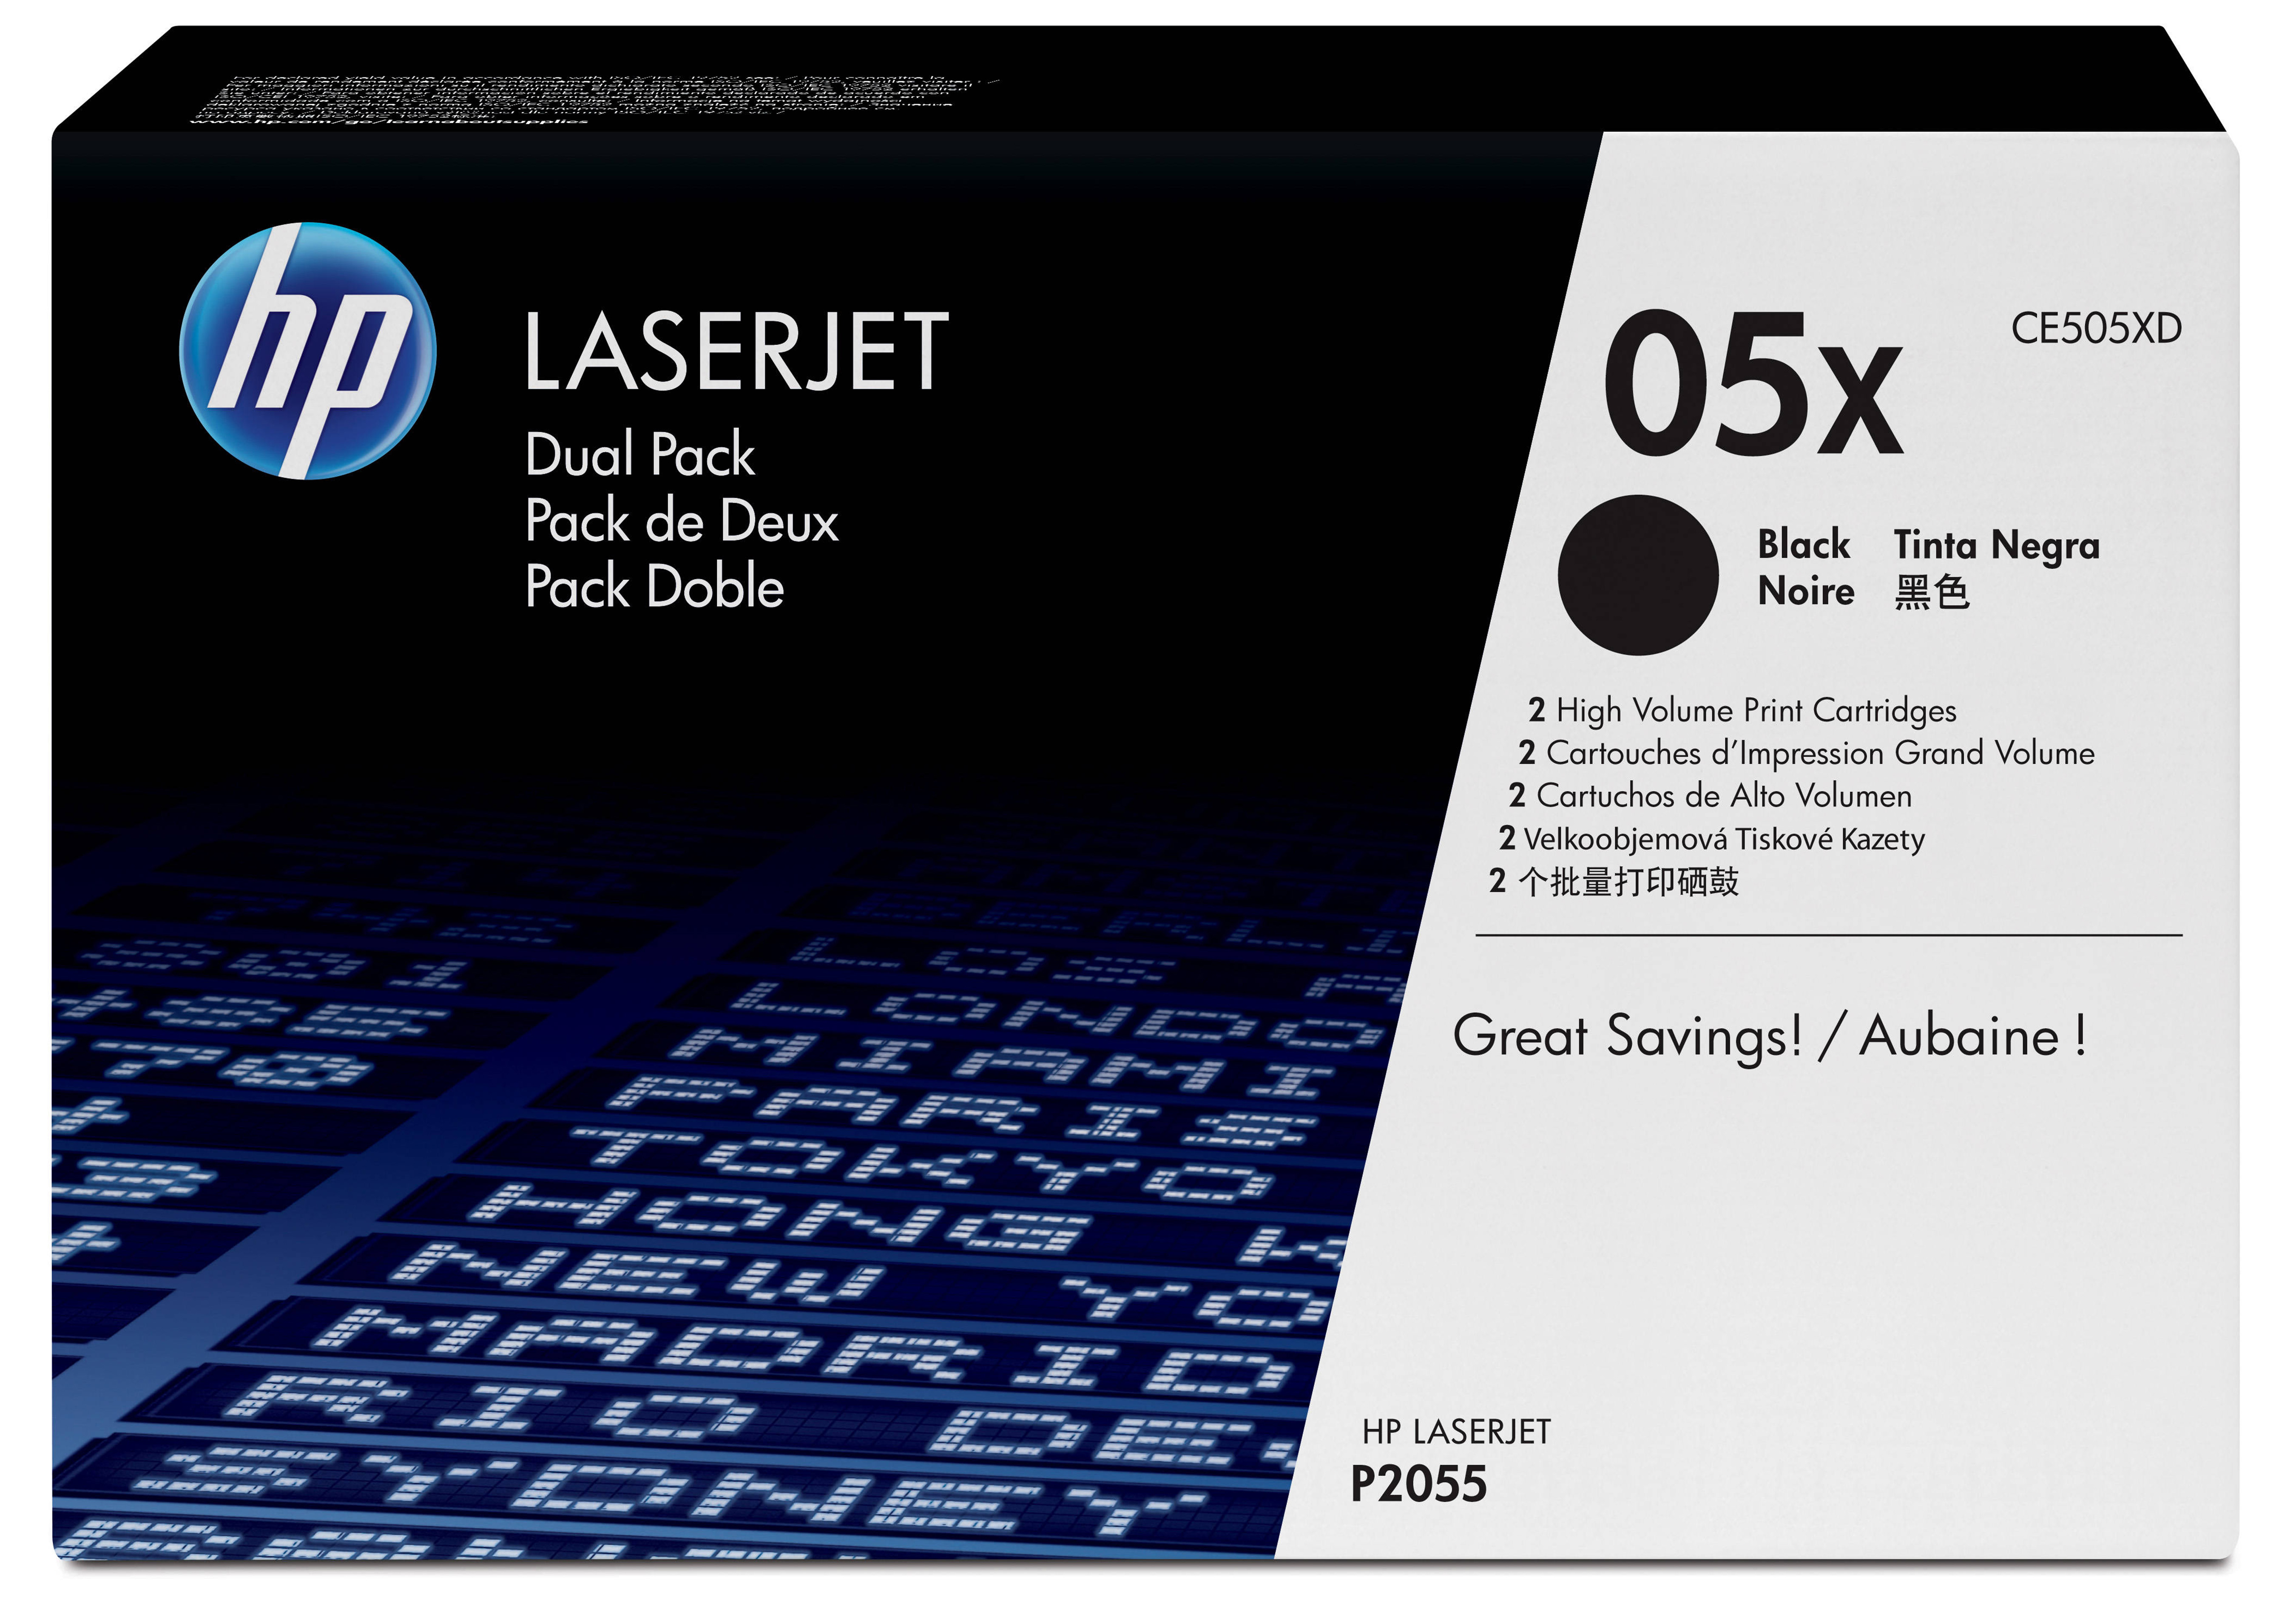 Ce505xd HP Hp Ce505x Dual Pack - AD01